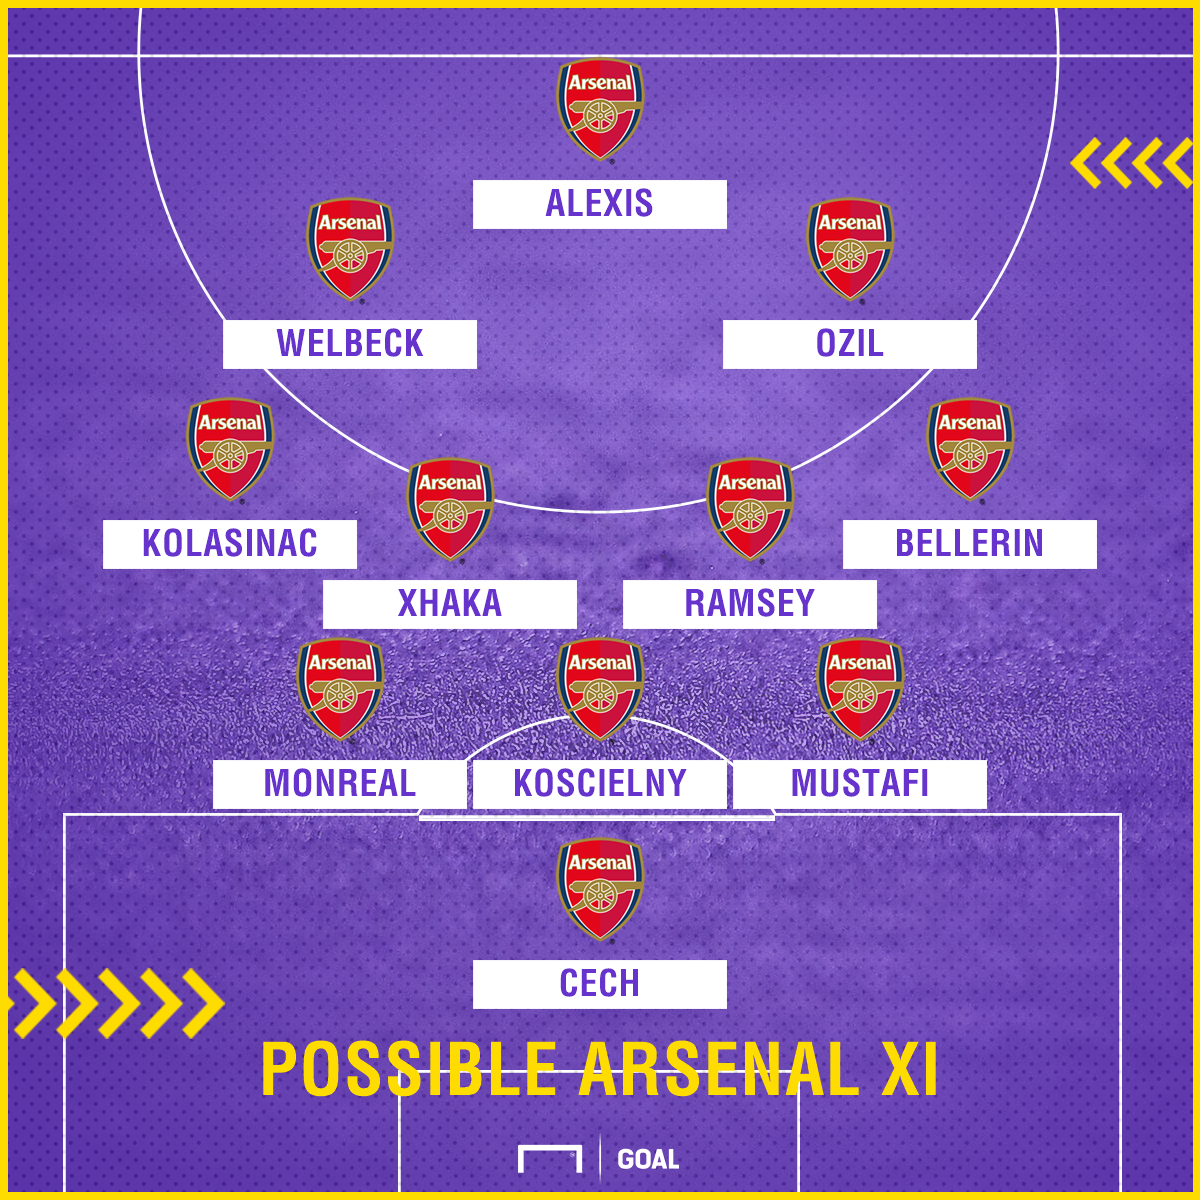 ArsenalXI